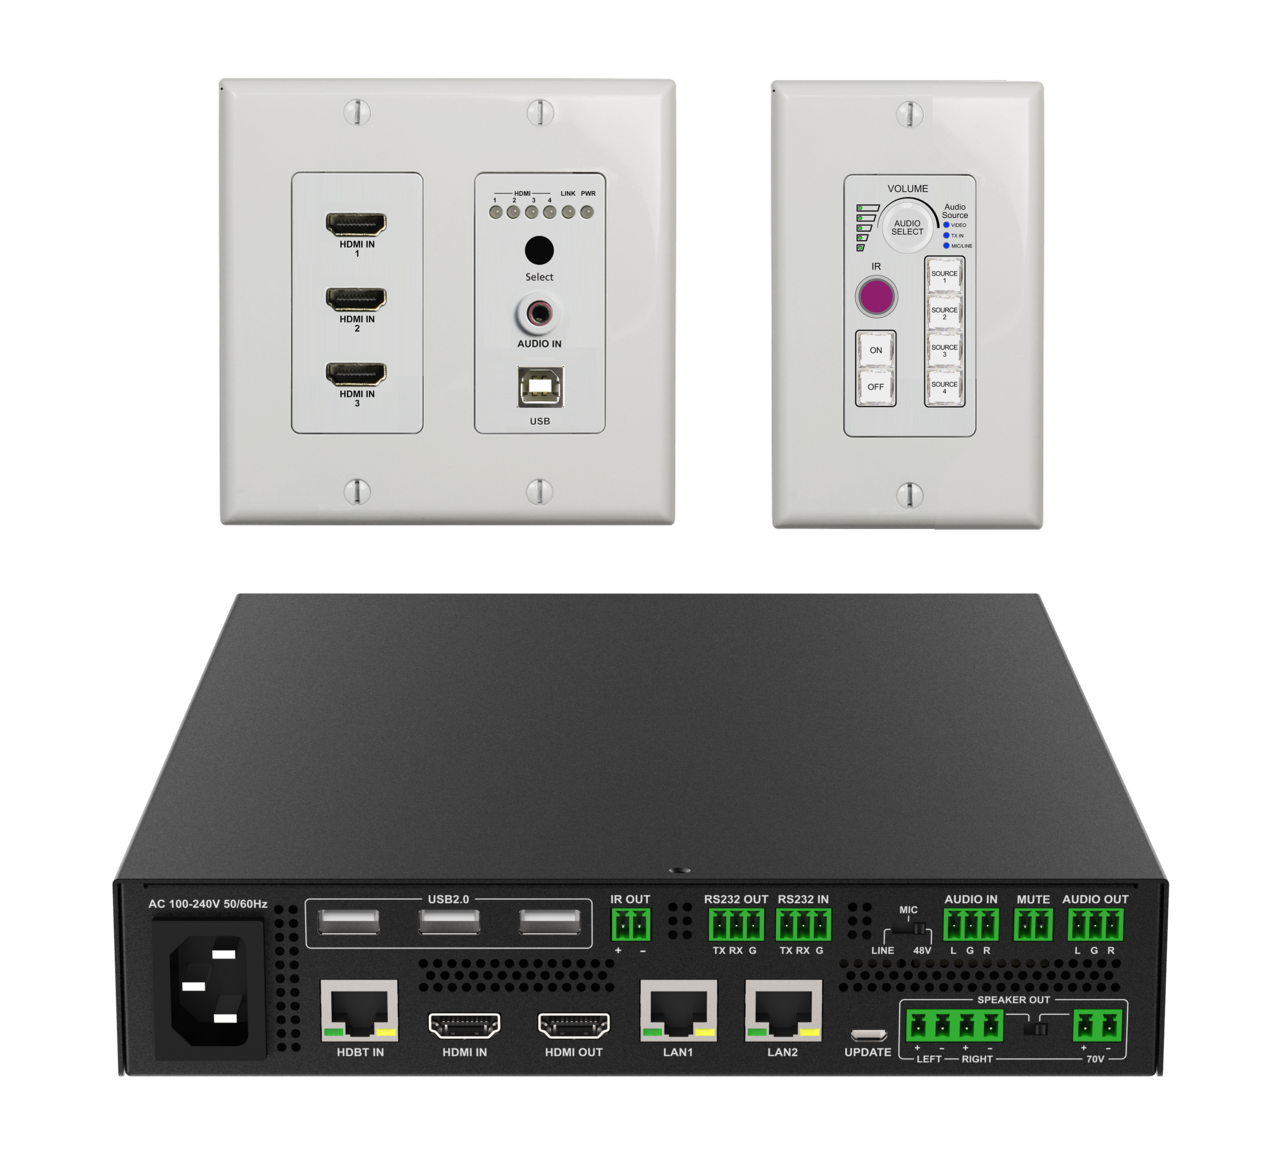 DL-ARK-4HC - Advanced Room Kit for Classroom / Training Room / Conference Room with 4x1 Switching, HDMI, & USB Extension, Audio Amp, Display Control, & Centralized Monitoring / Control Software